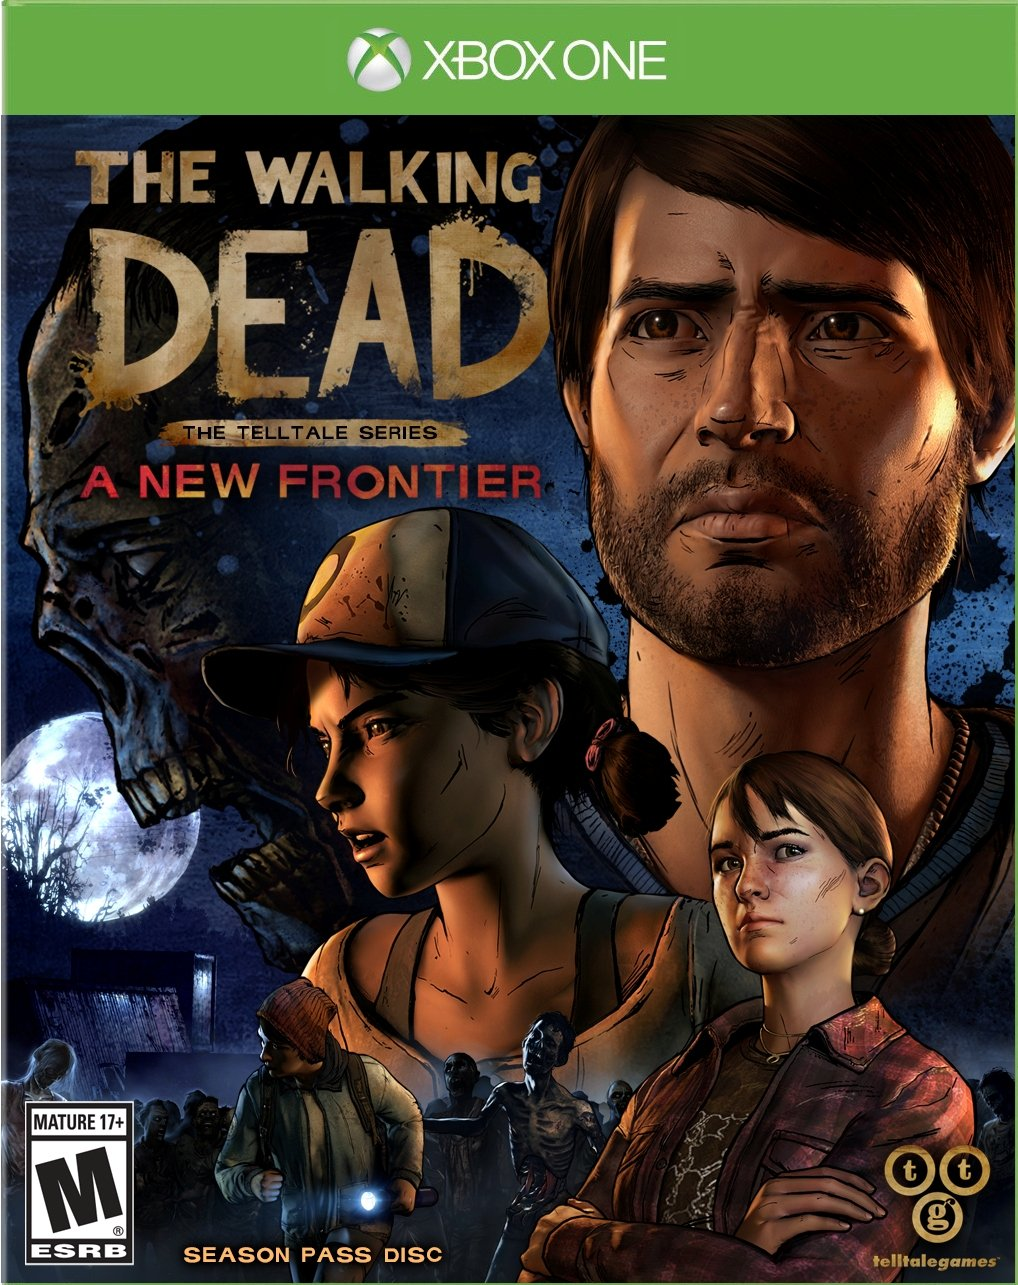 ff9fe22a850e The Walking Dead  The Telltale Series A New Frontier - Xbox One. by  Telltale Games